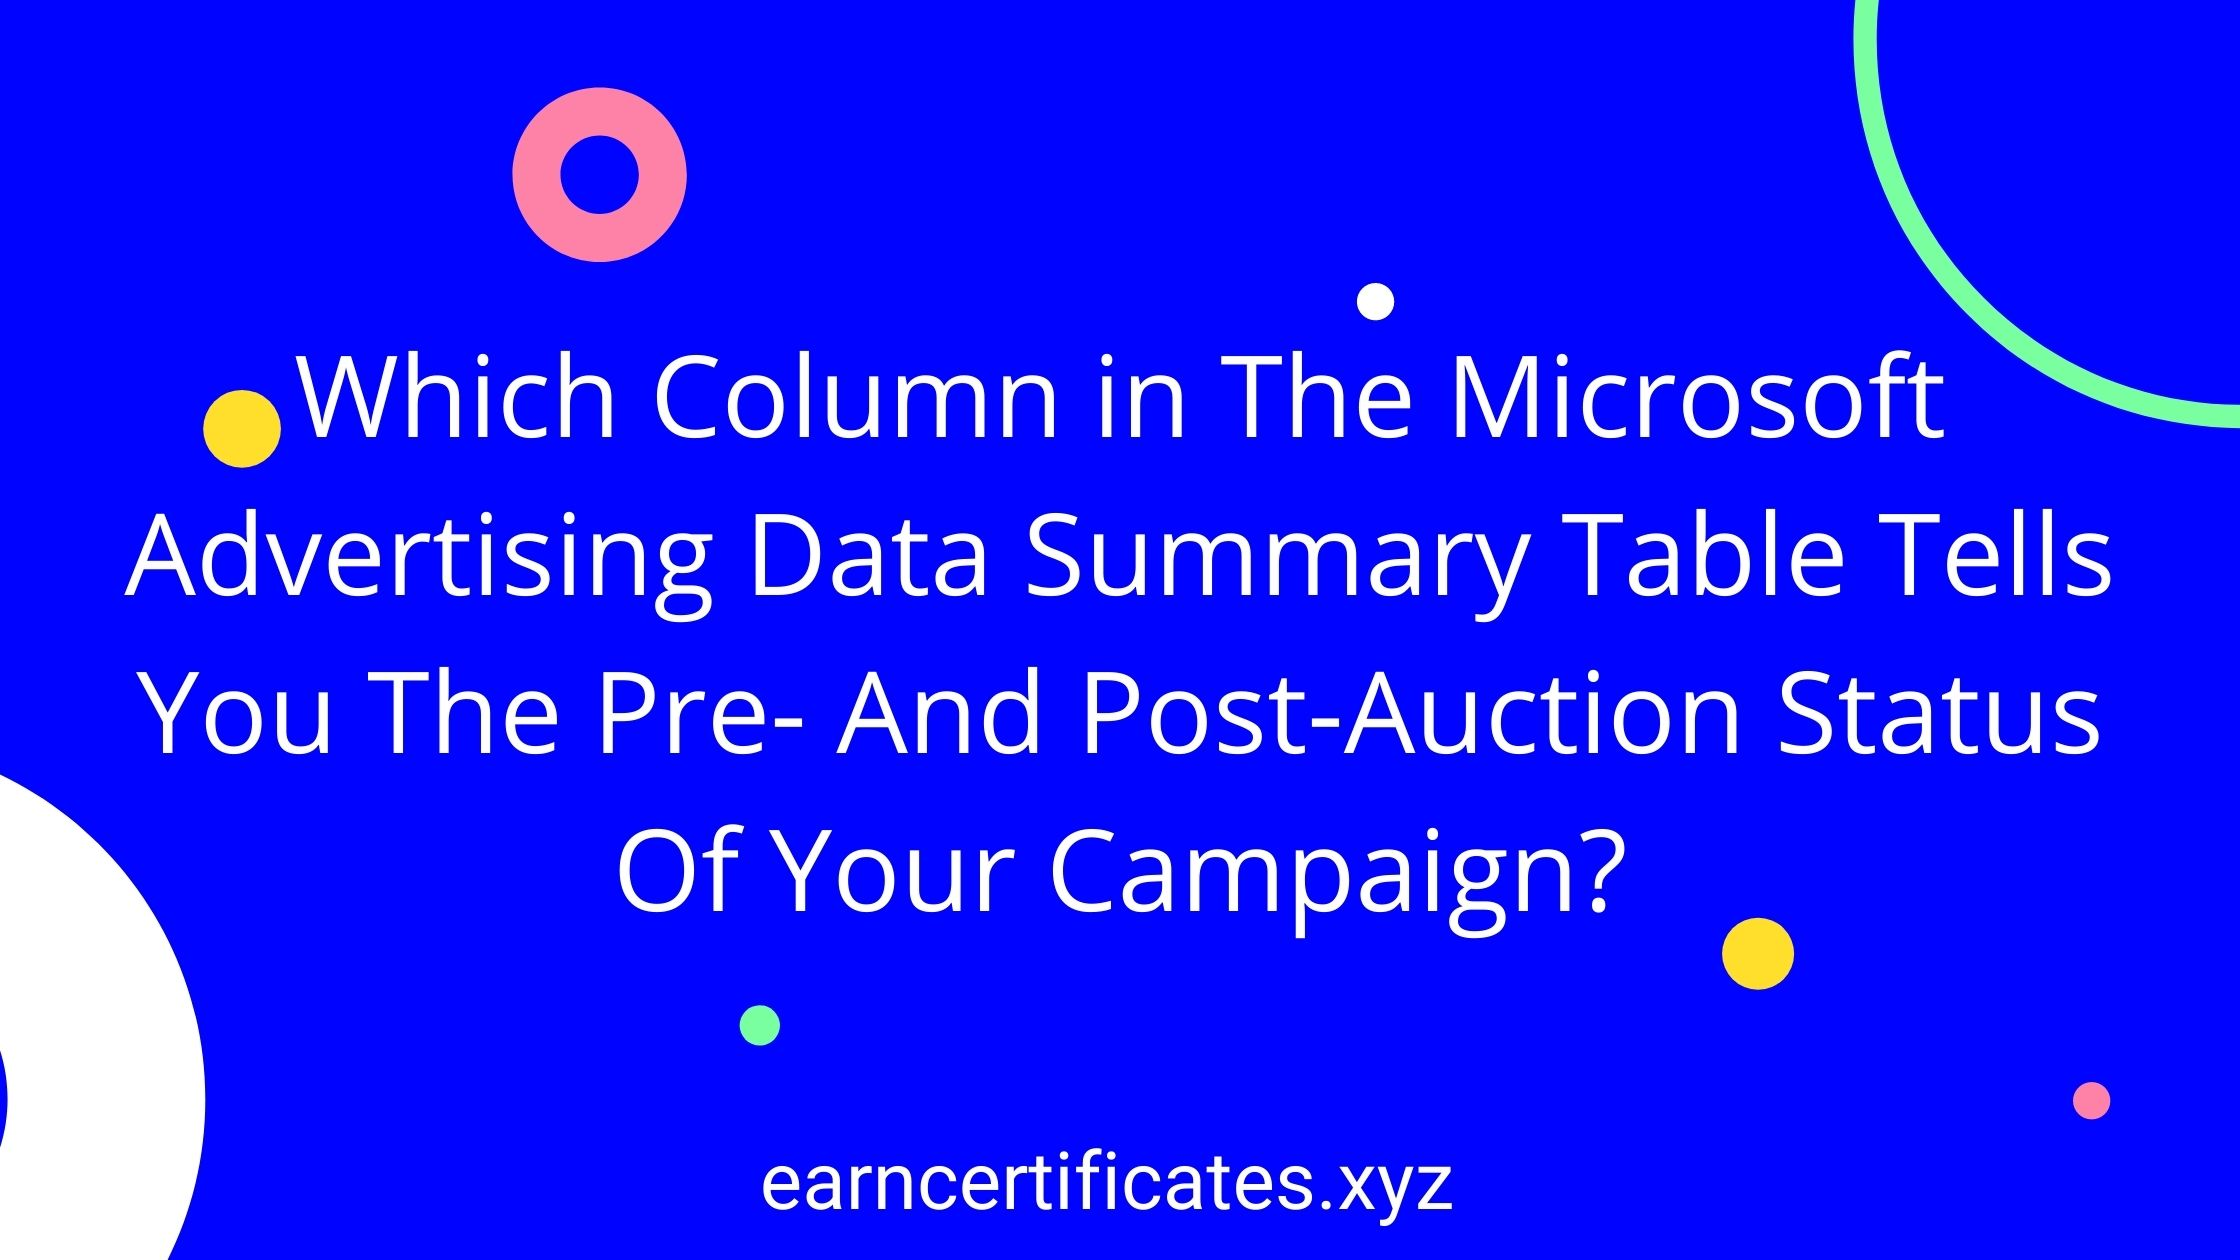 Which Column in The Microsoft Advertising Data Summary Table Tells You The Pre- And Post-Auction Status Of Your Campaign?